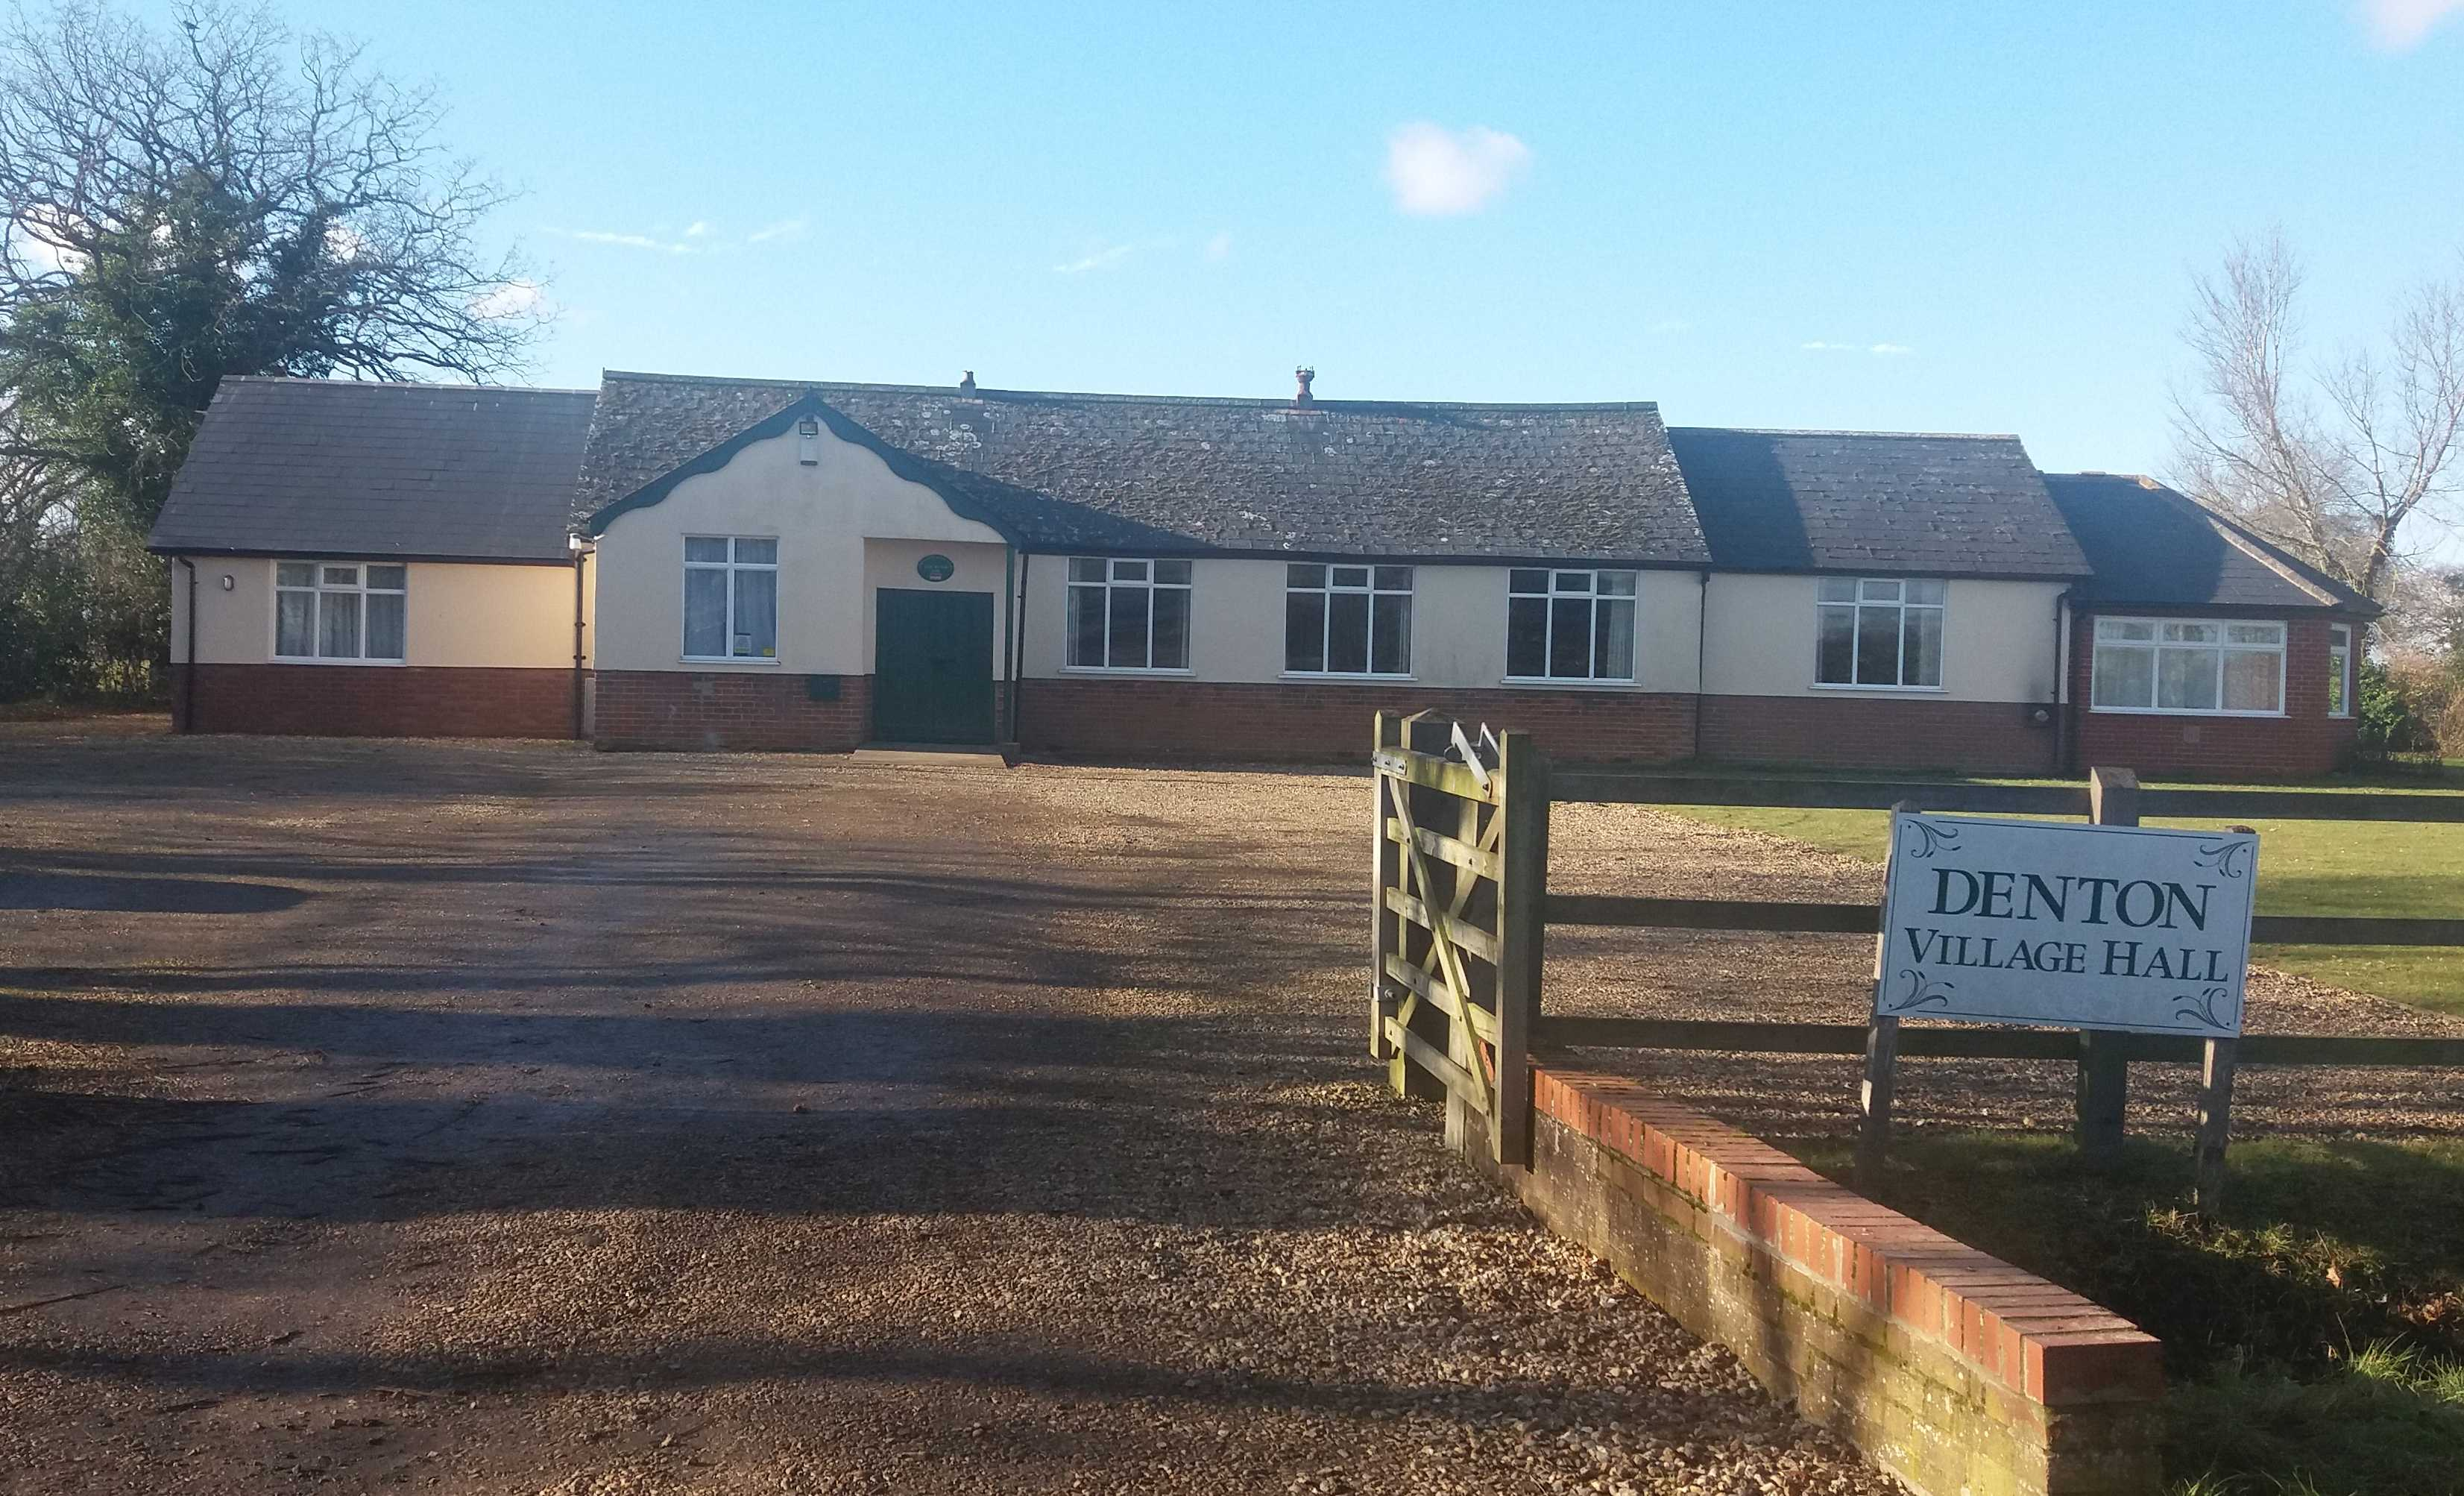 Denton Village Hall 2017